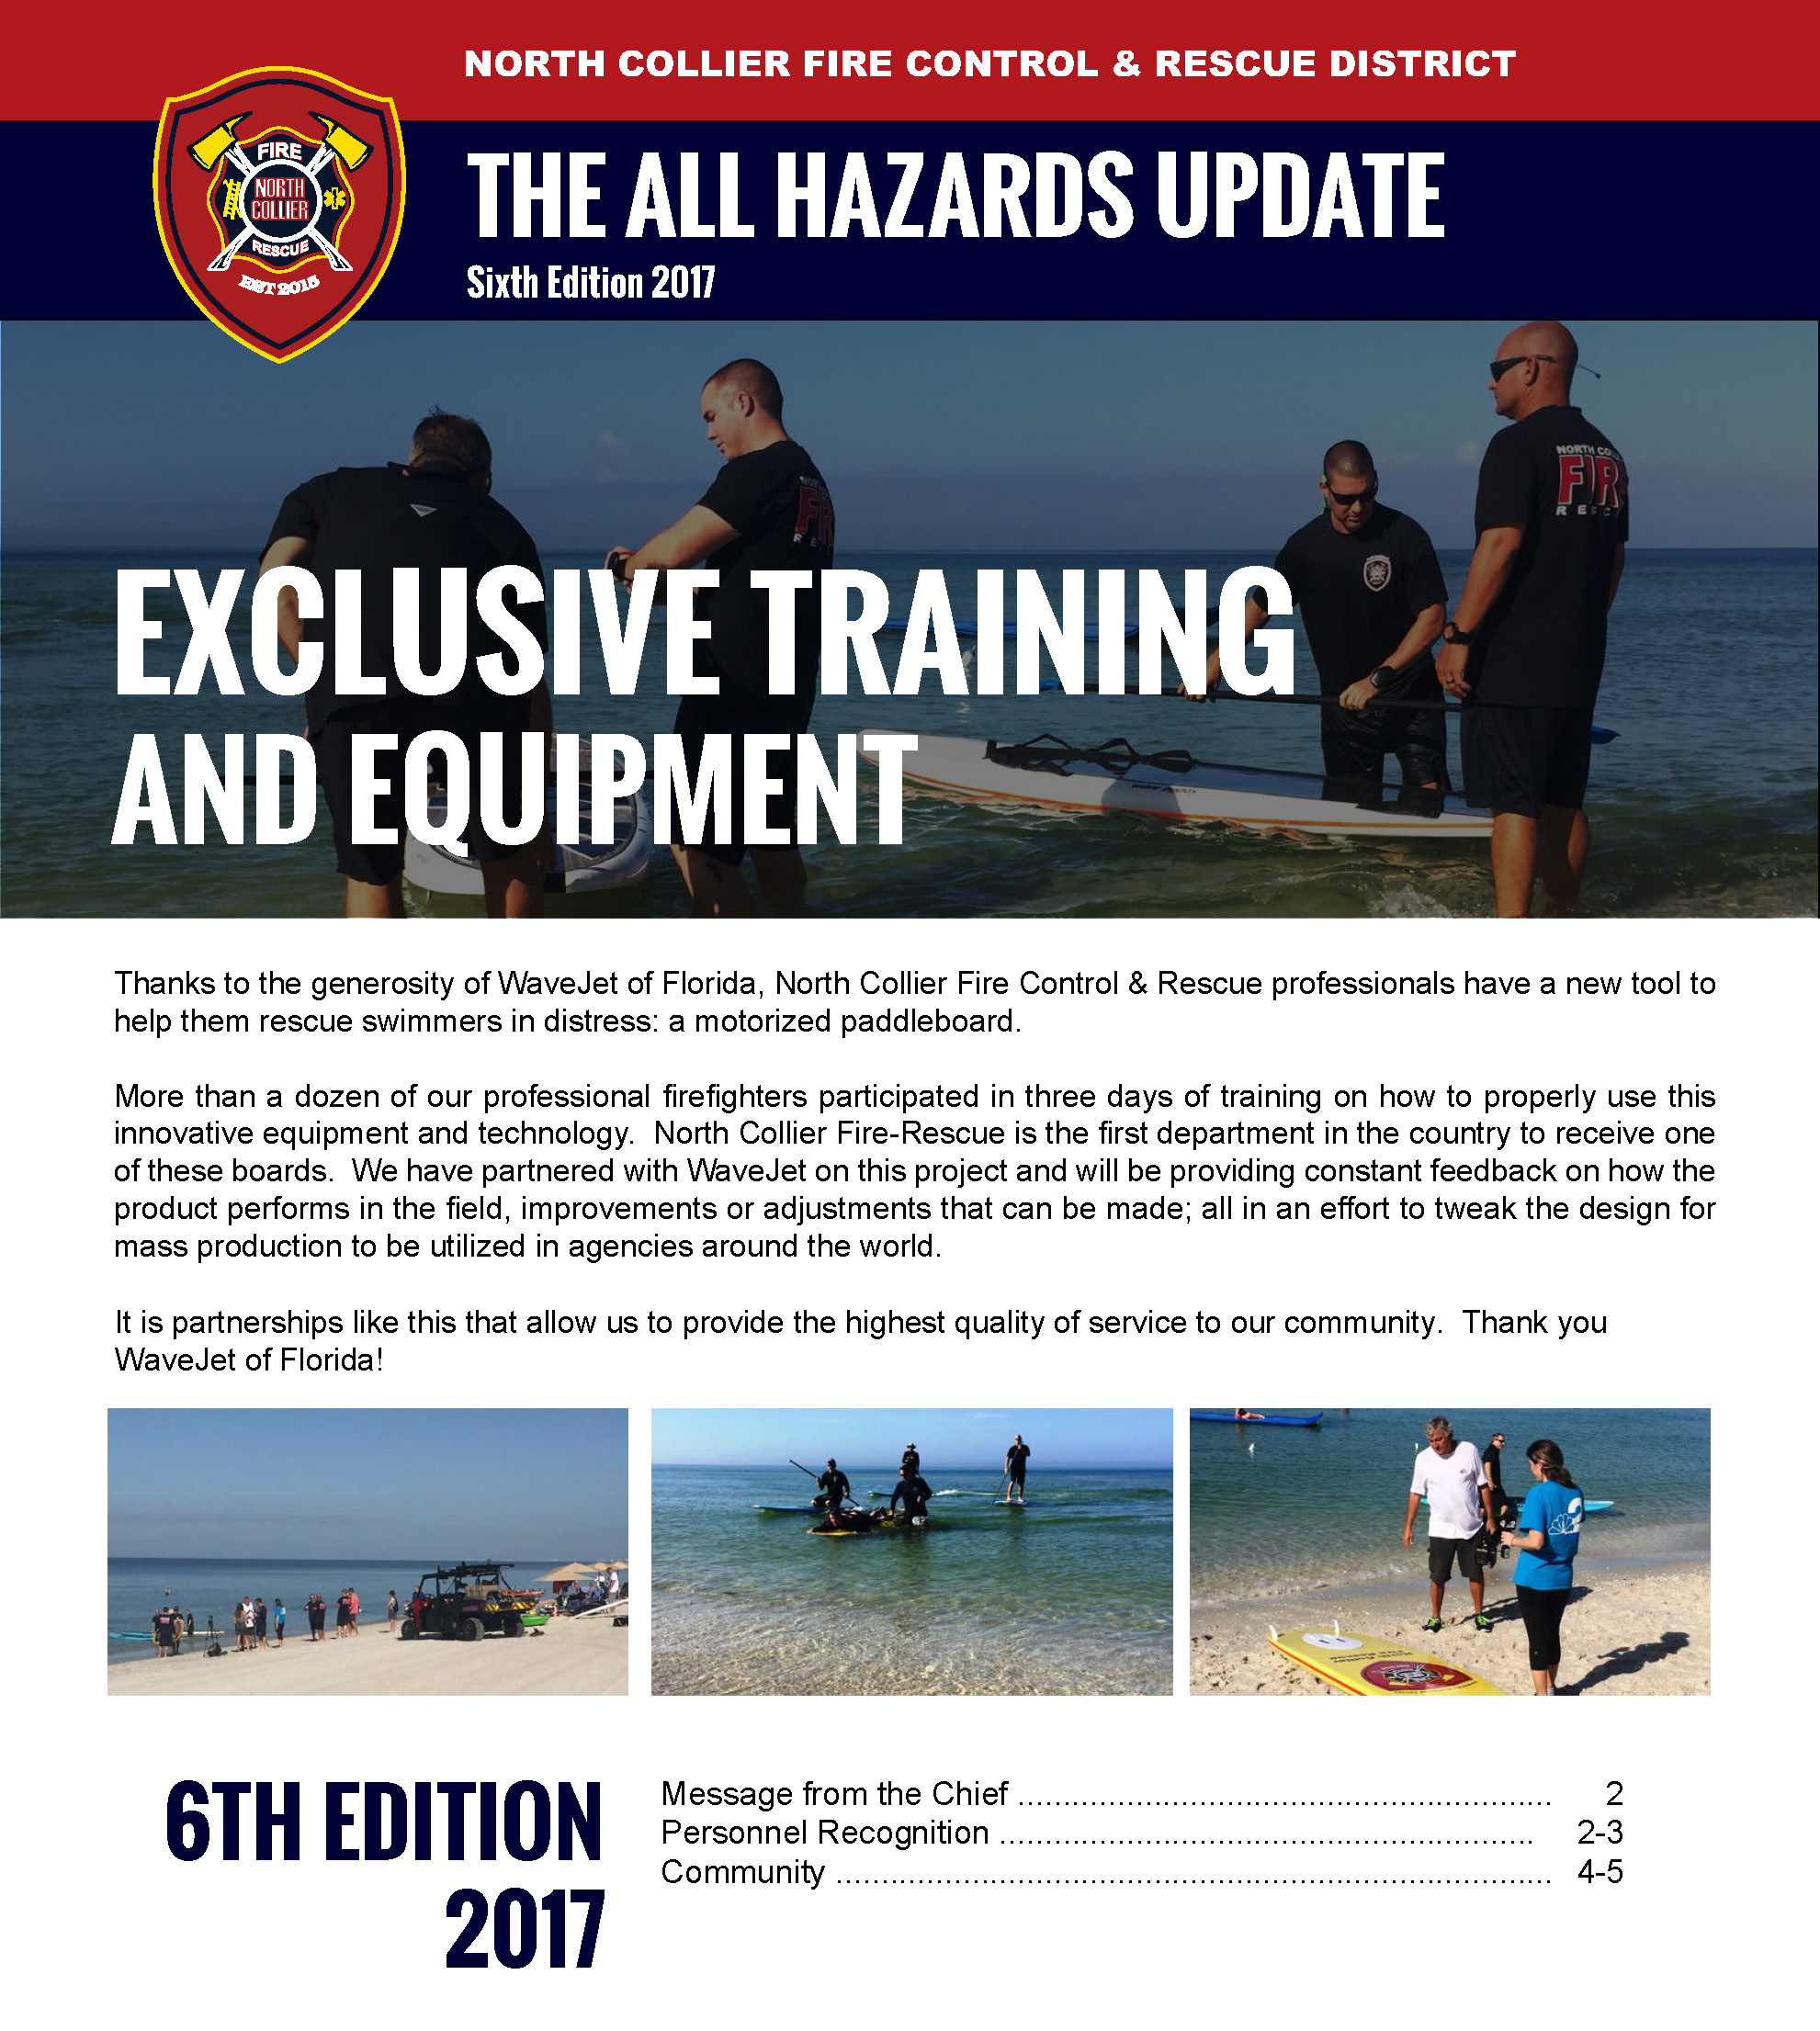 All Hazards Update Sixth Edition 2017